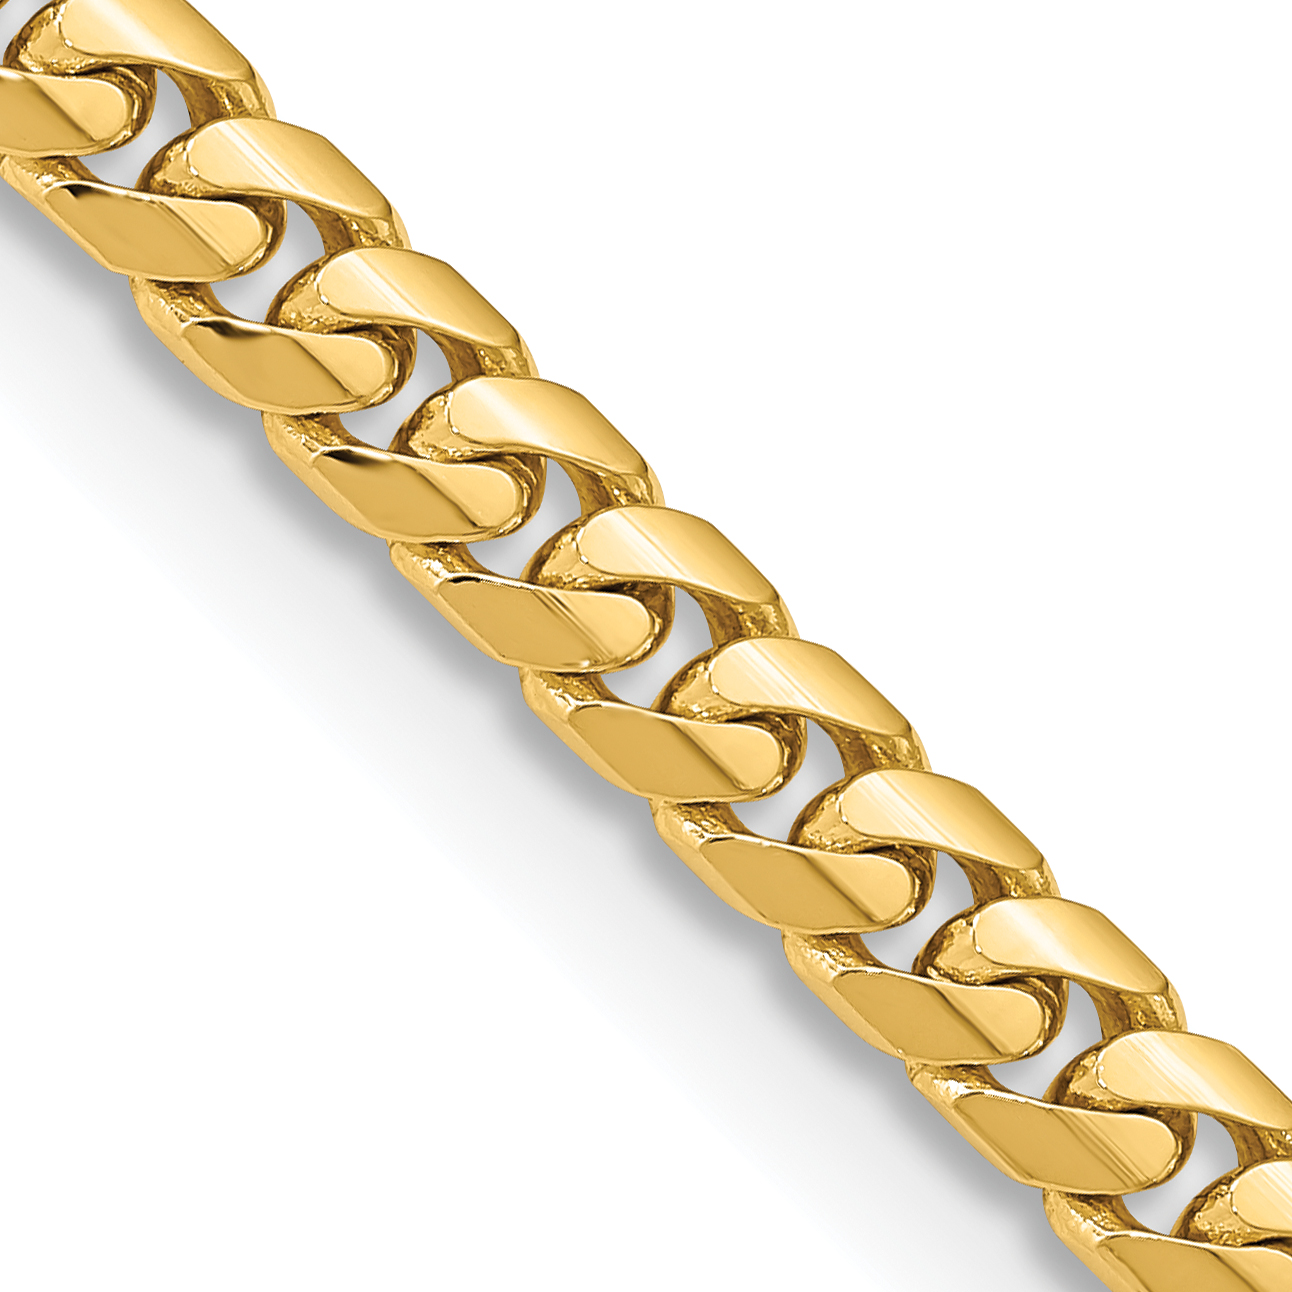 14k 5.5mm Solid Miami Cuban Chain. Weight: 41.43,  Length: 20